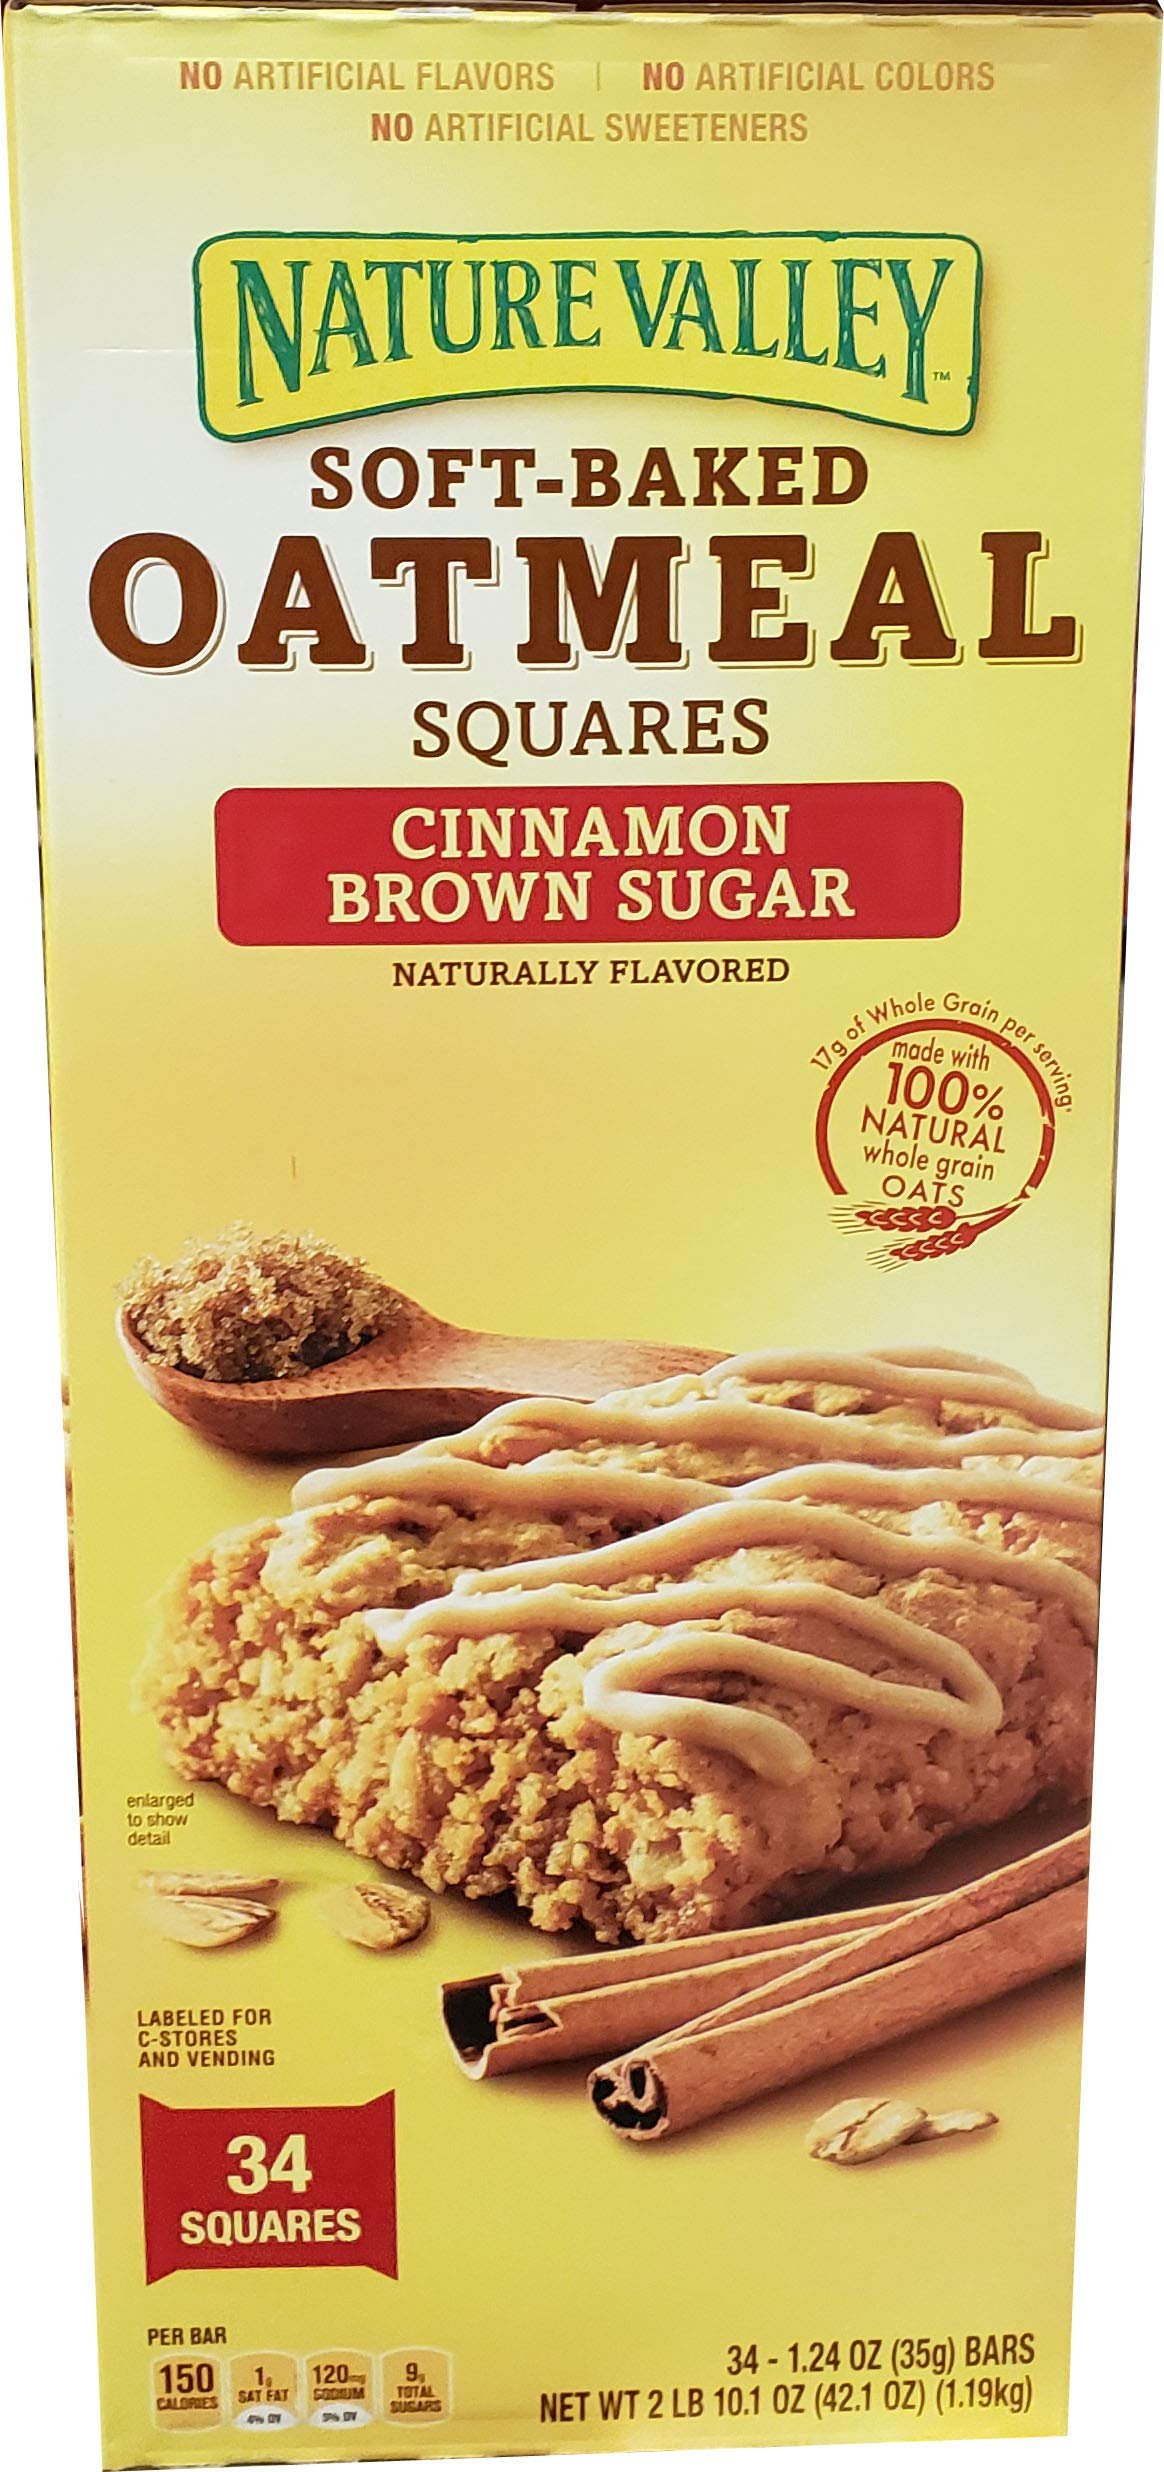 Nature Valley Nature Valley Soft Baked Oatmeal Squares 34 x 1.24 Oz Net Wt 42.1 Oz, 42.1 oz by Nature Valley